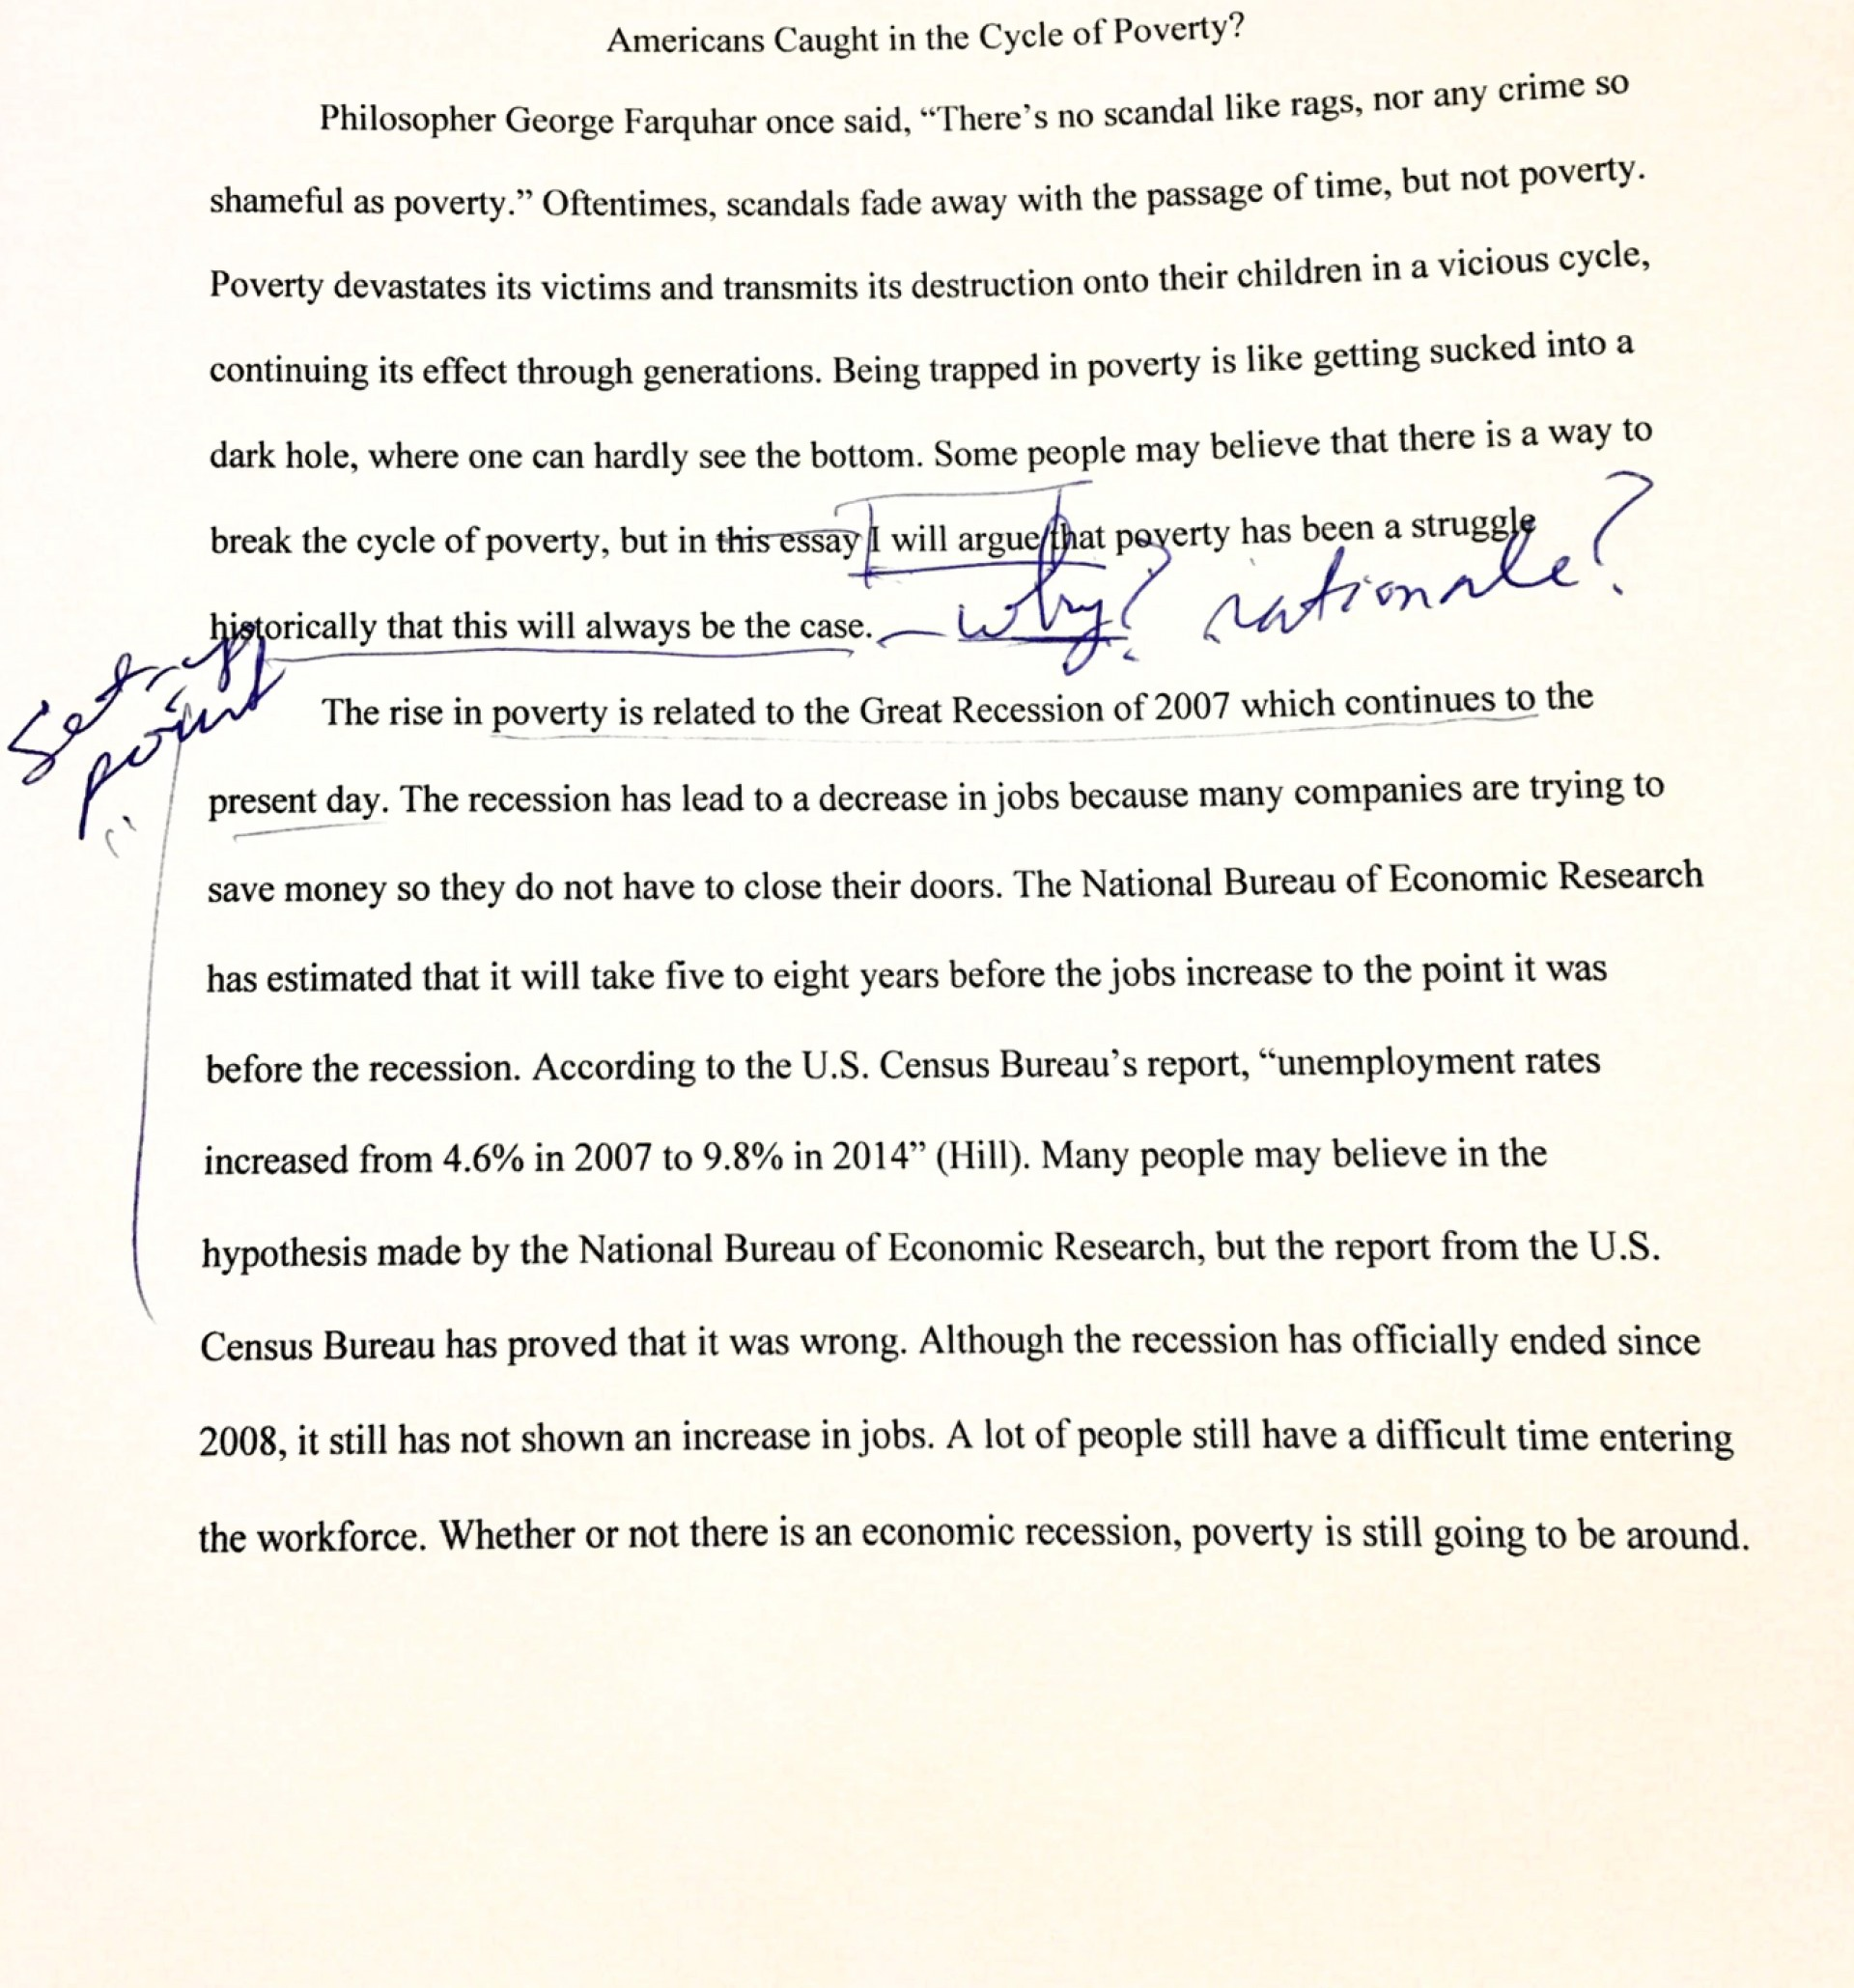 006 Correct My Essay Stupendous Auto Who Can Proofread 1920